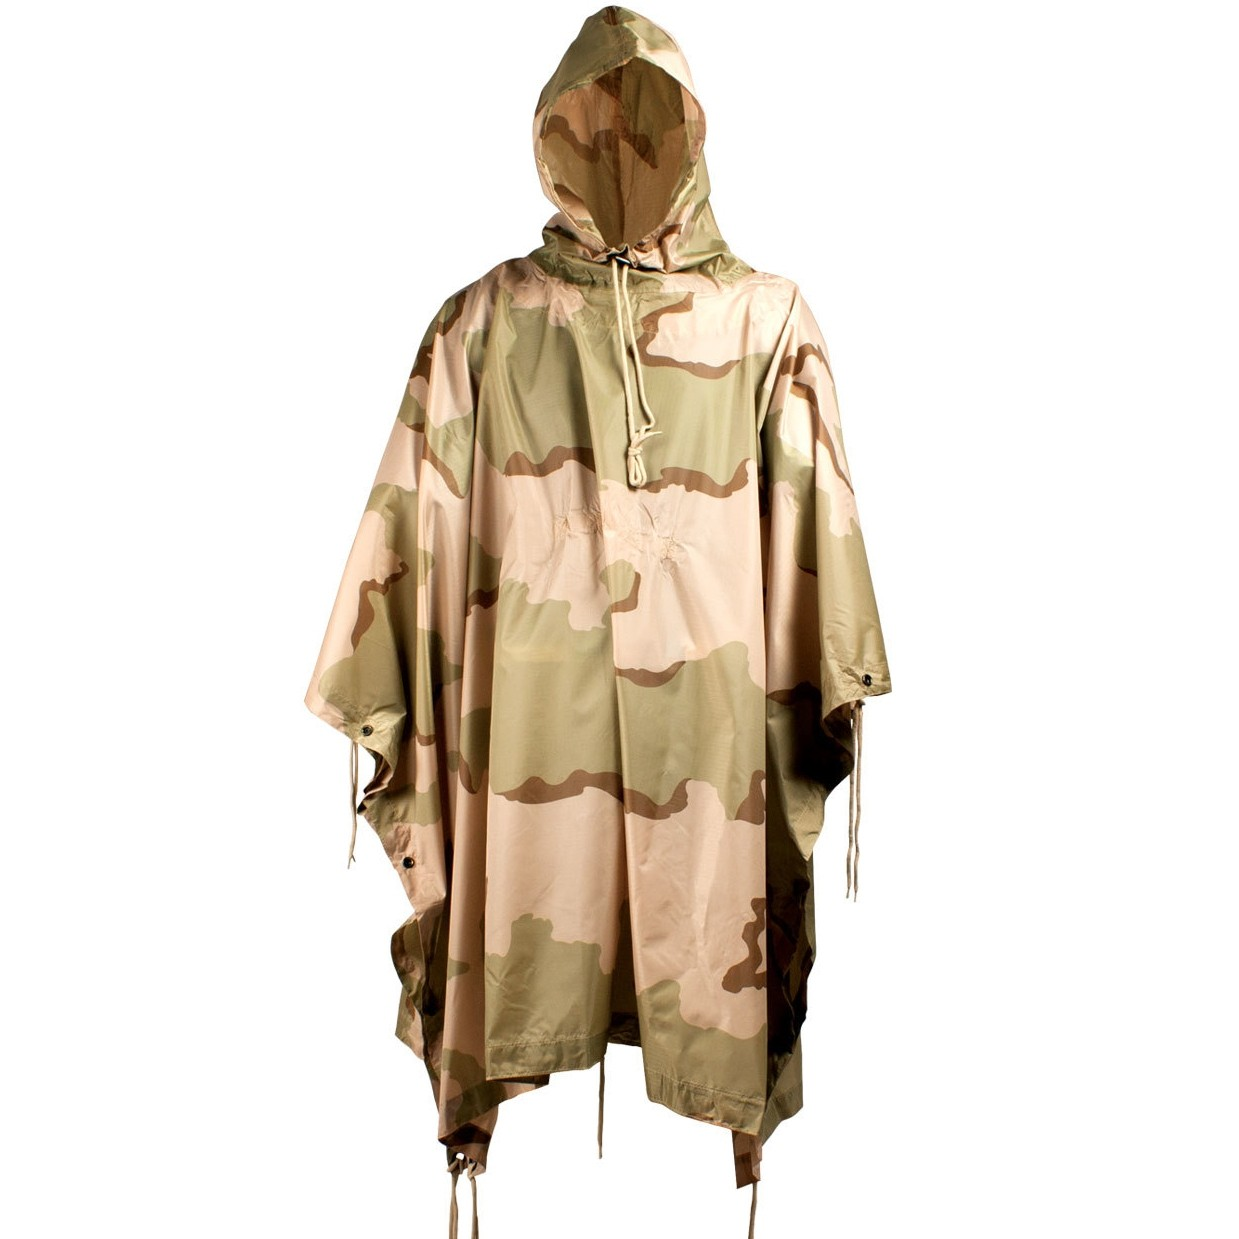 Red Rock Gear G.I. Style Ripstop Nylon Poncho